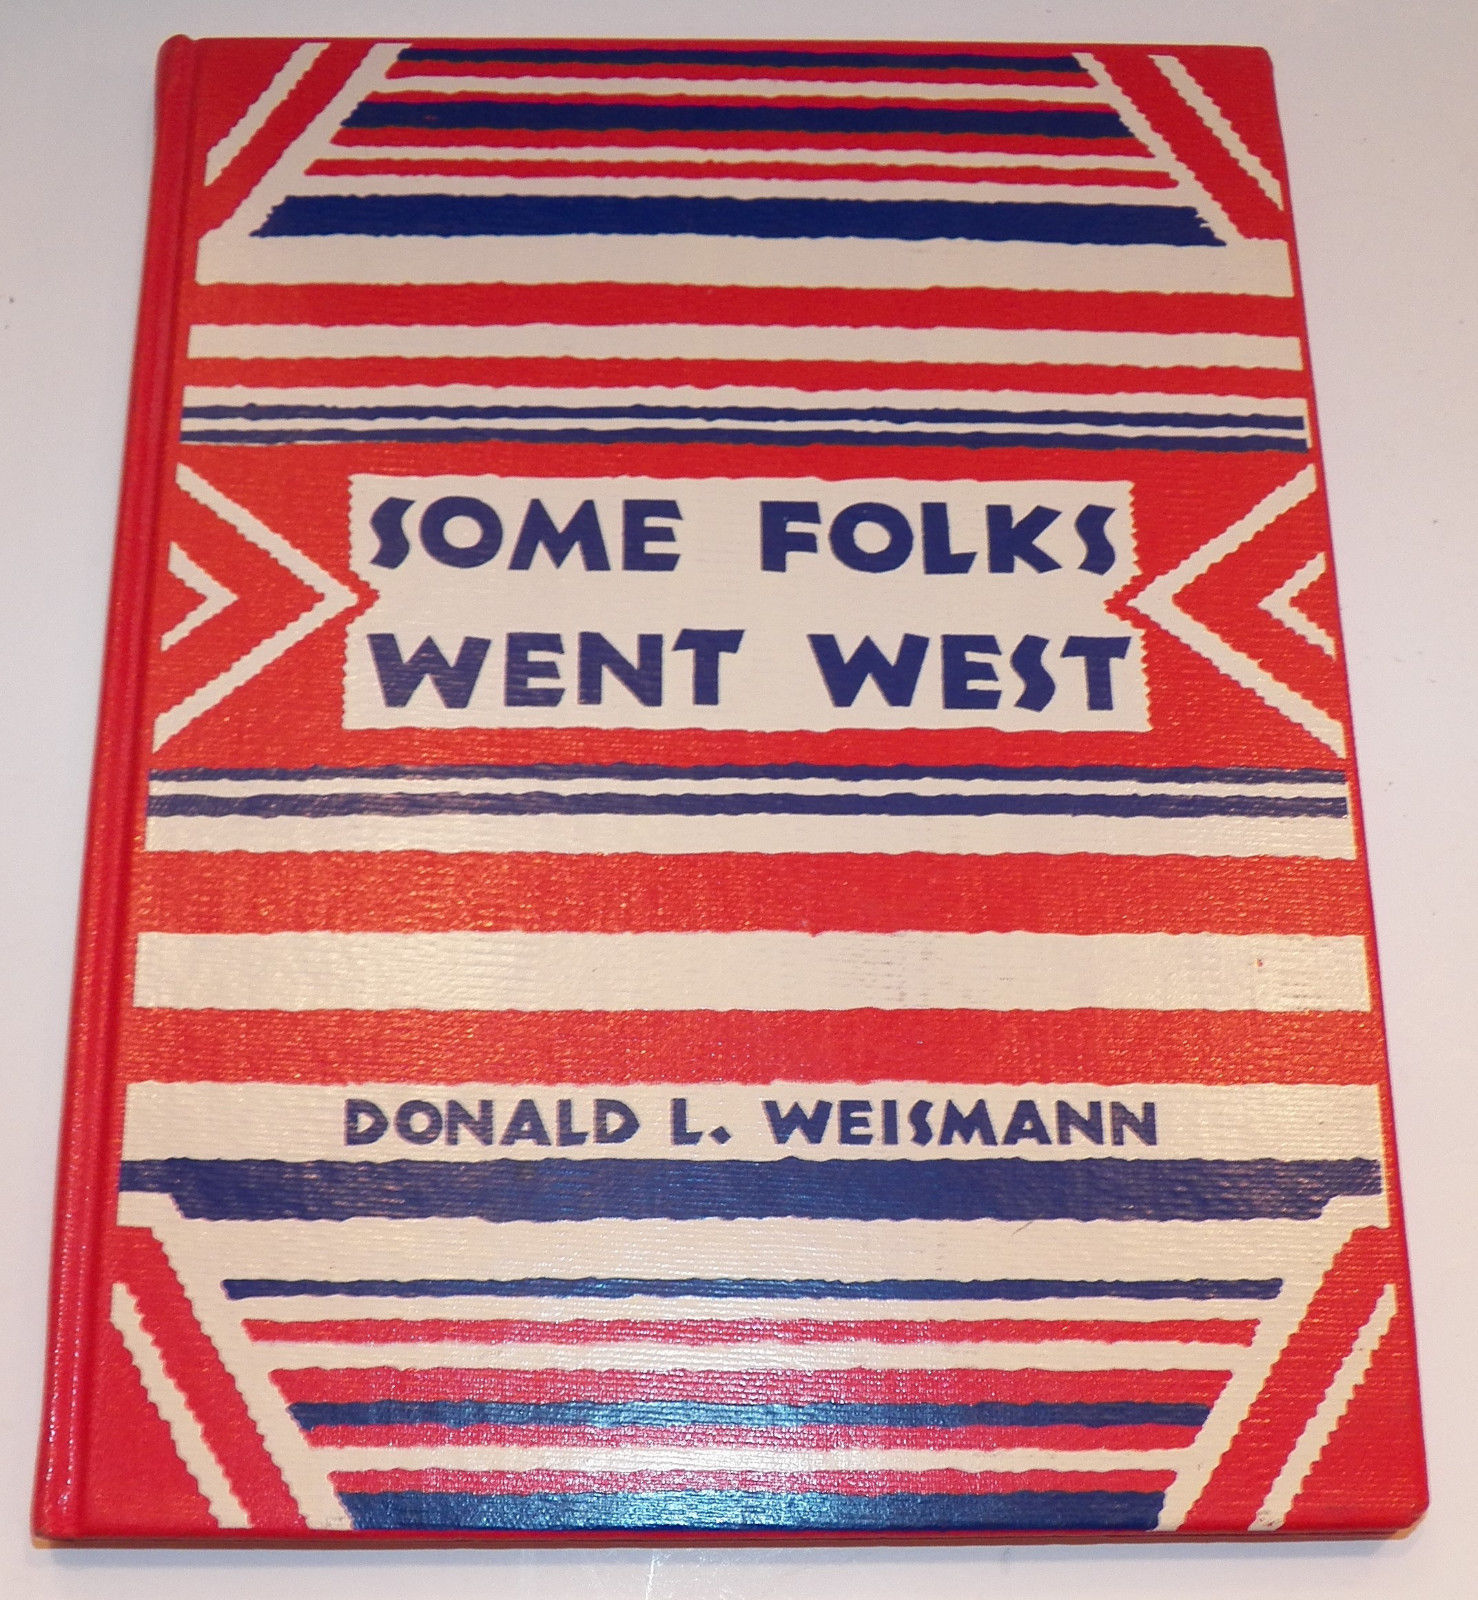 Primary image for VTG Some Folks Went West Hardcover Book by Donald L Weismann Ex-Lib GUC 1960